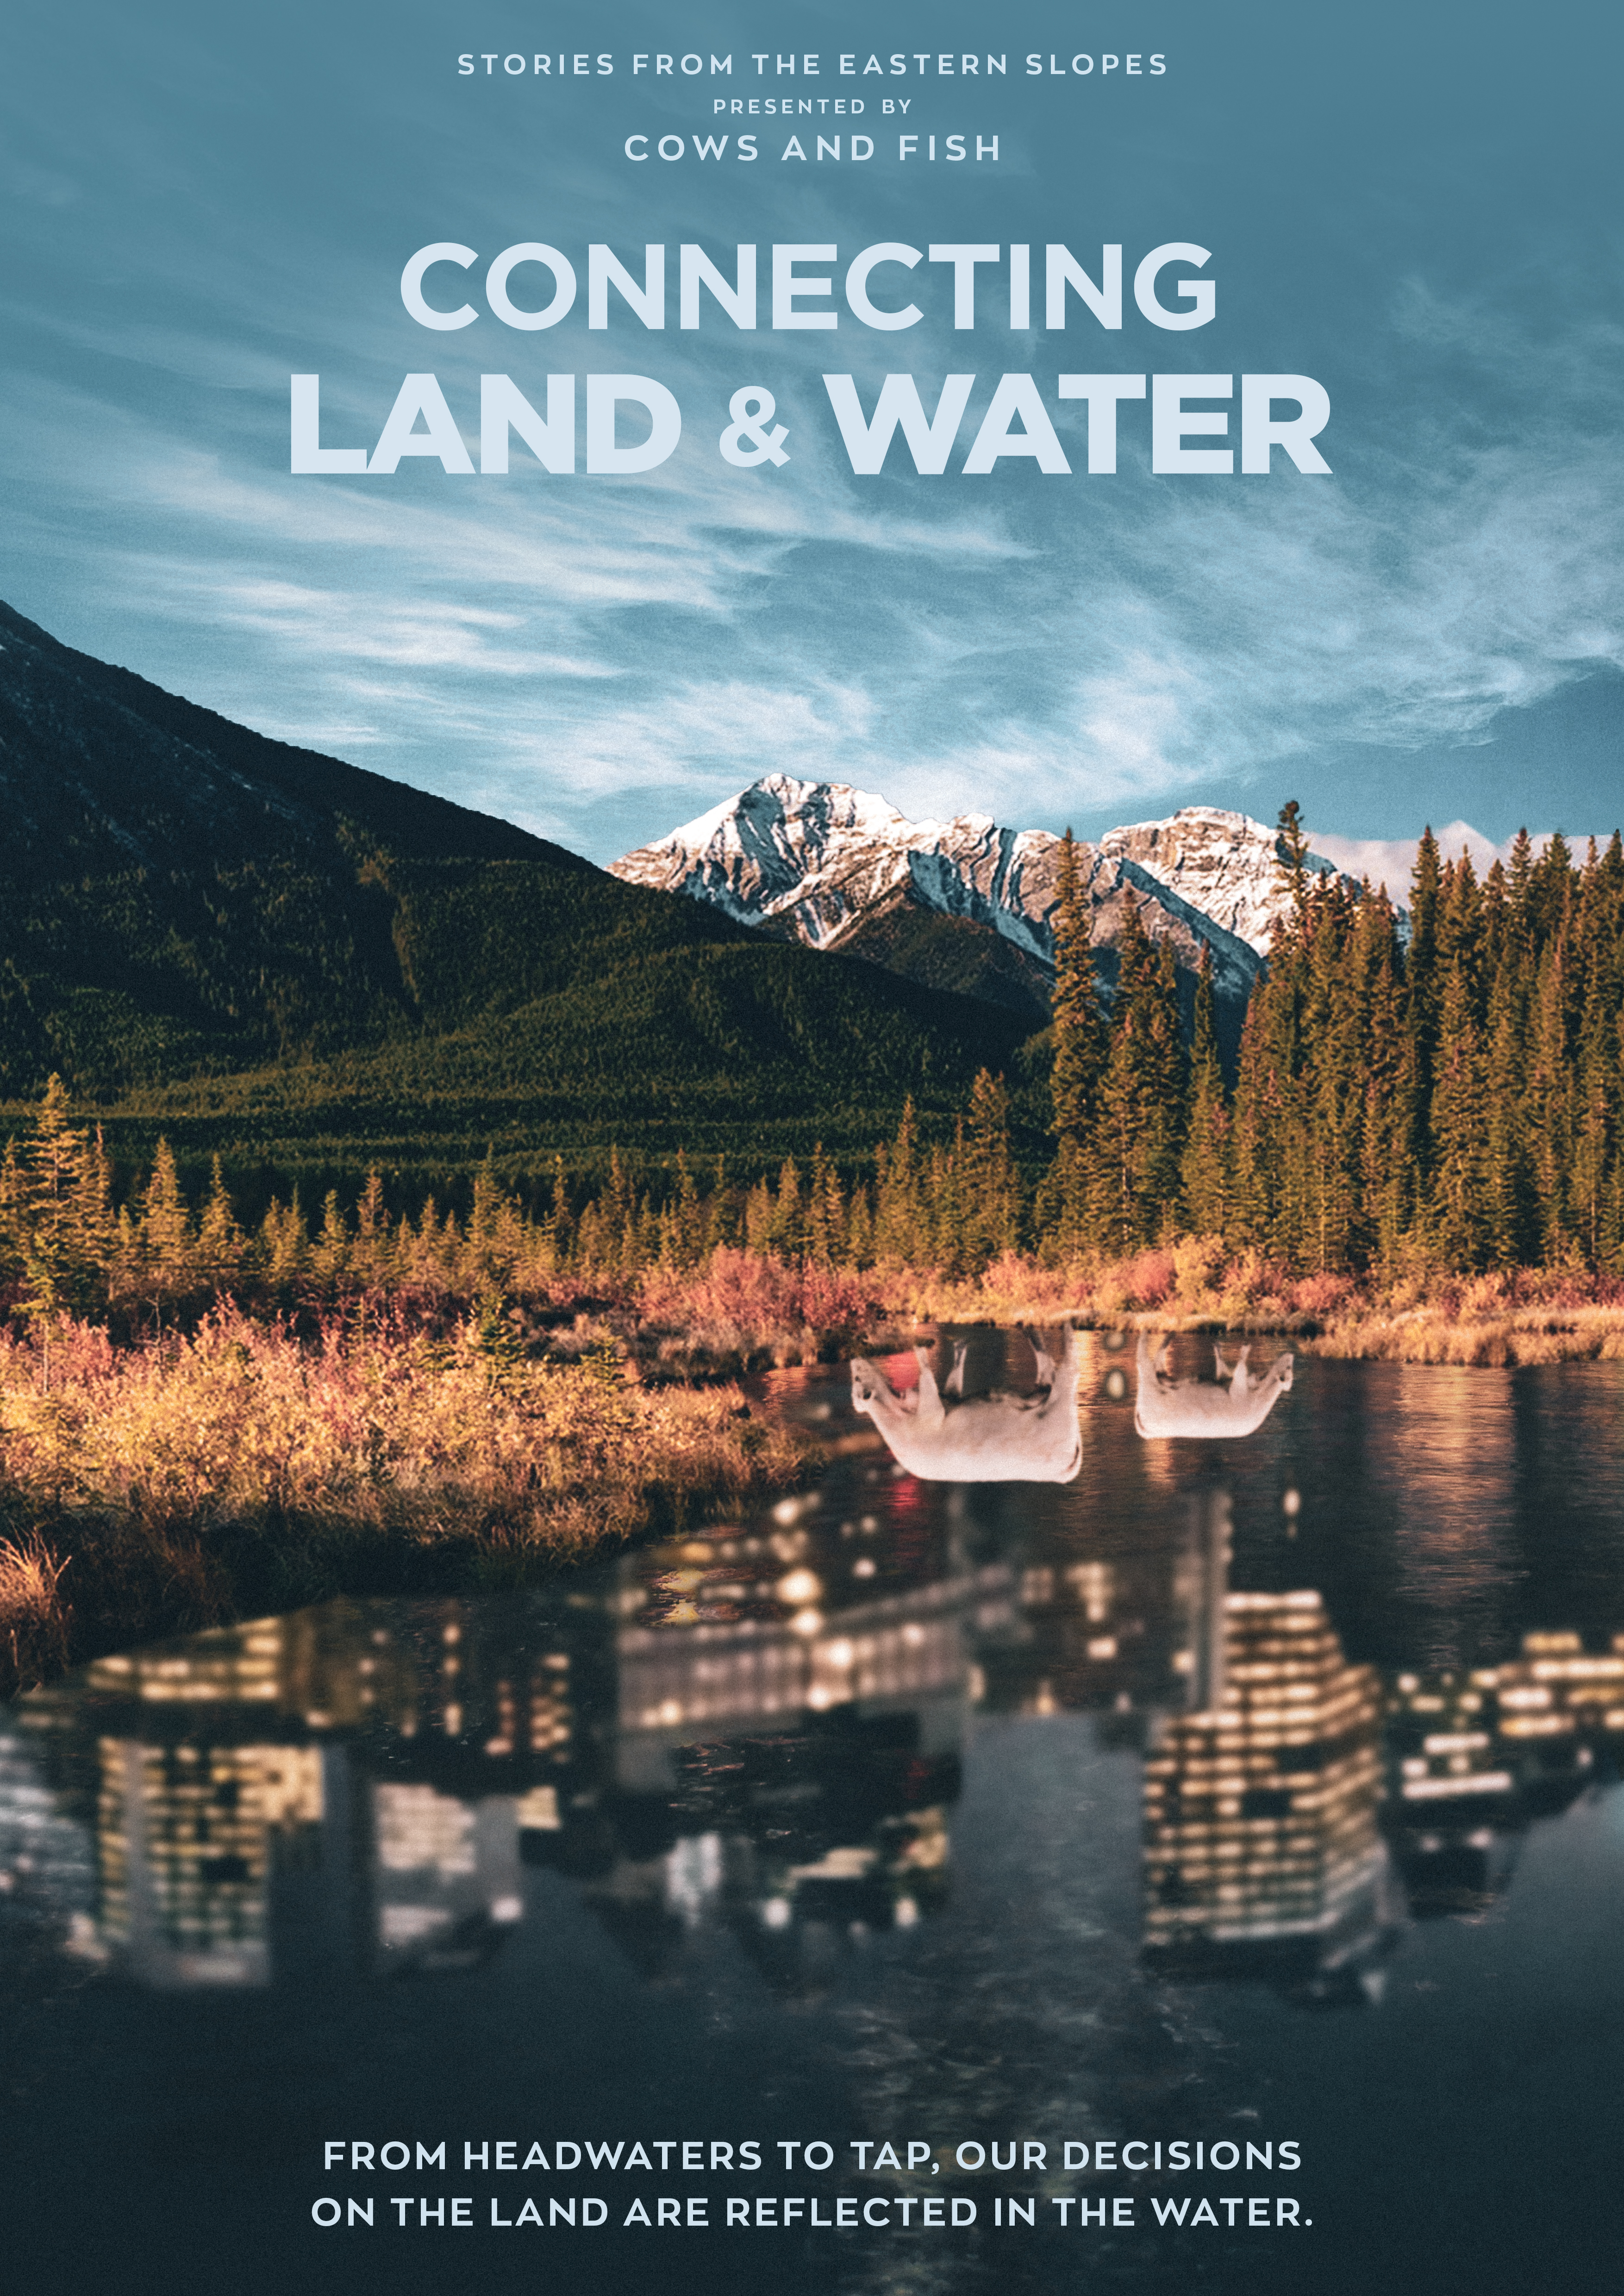 Connecting Land and Water - Stories from the Eastern Slopes Film Screening